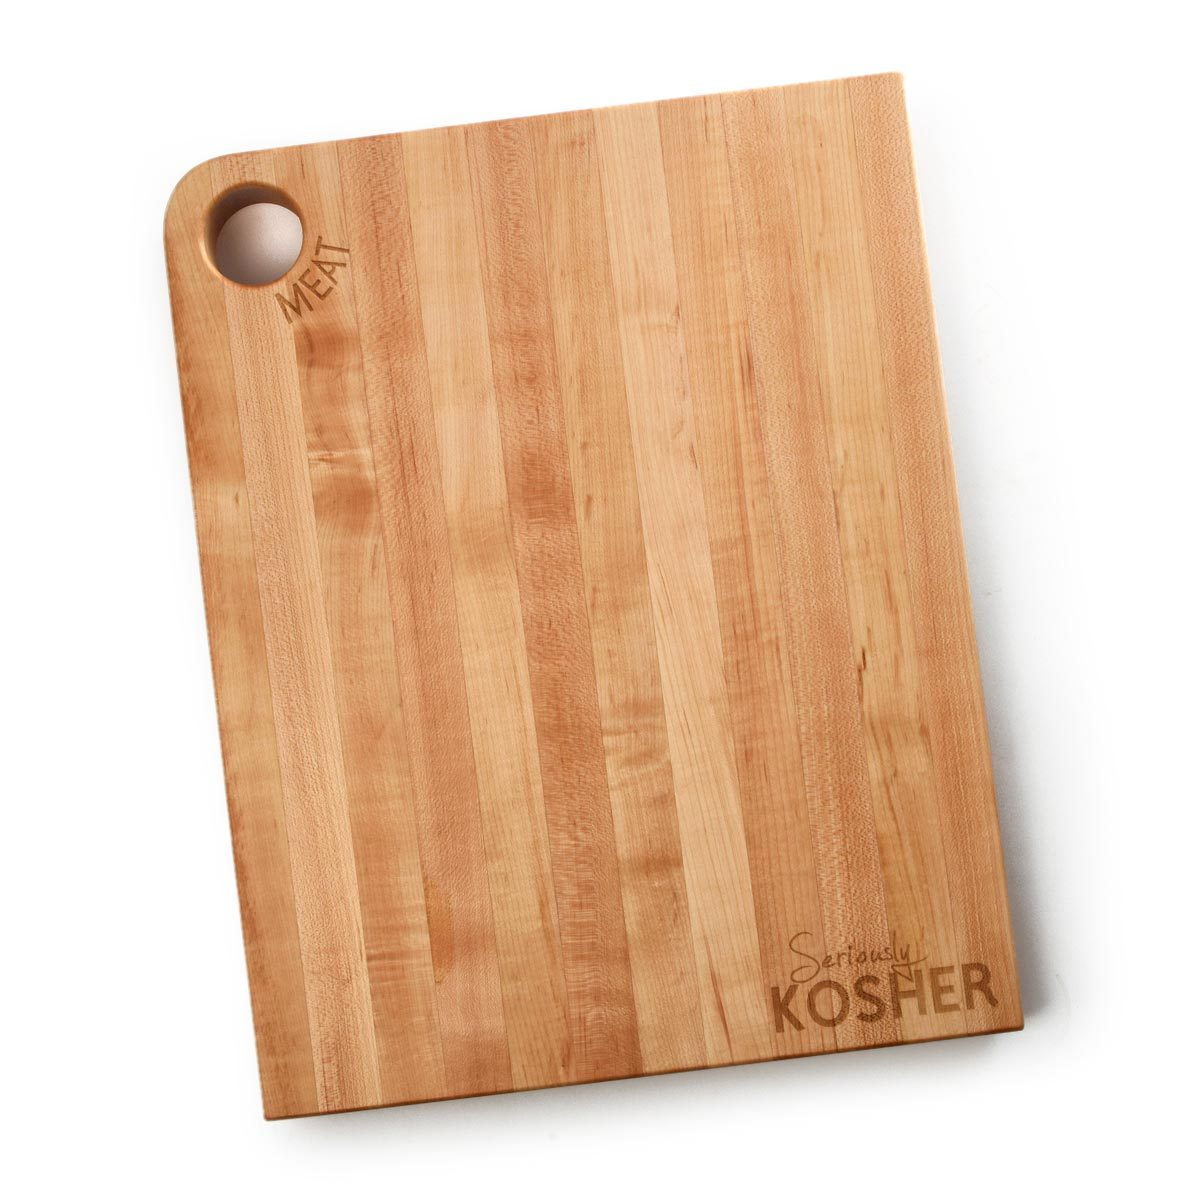 Seriously Kosher ~ Large Cutting Board ~ Meat